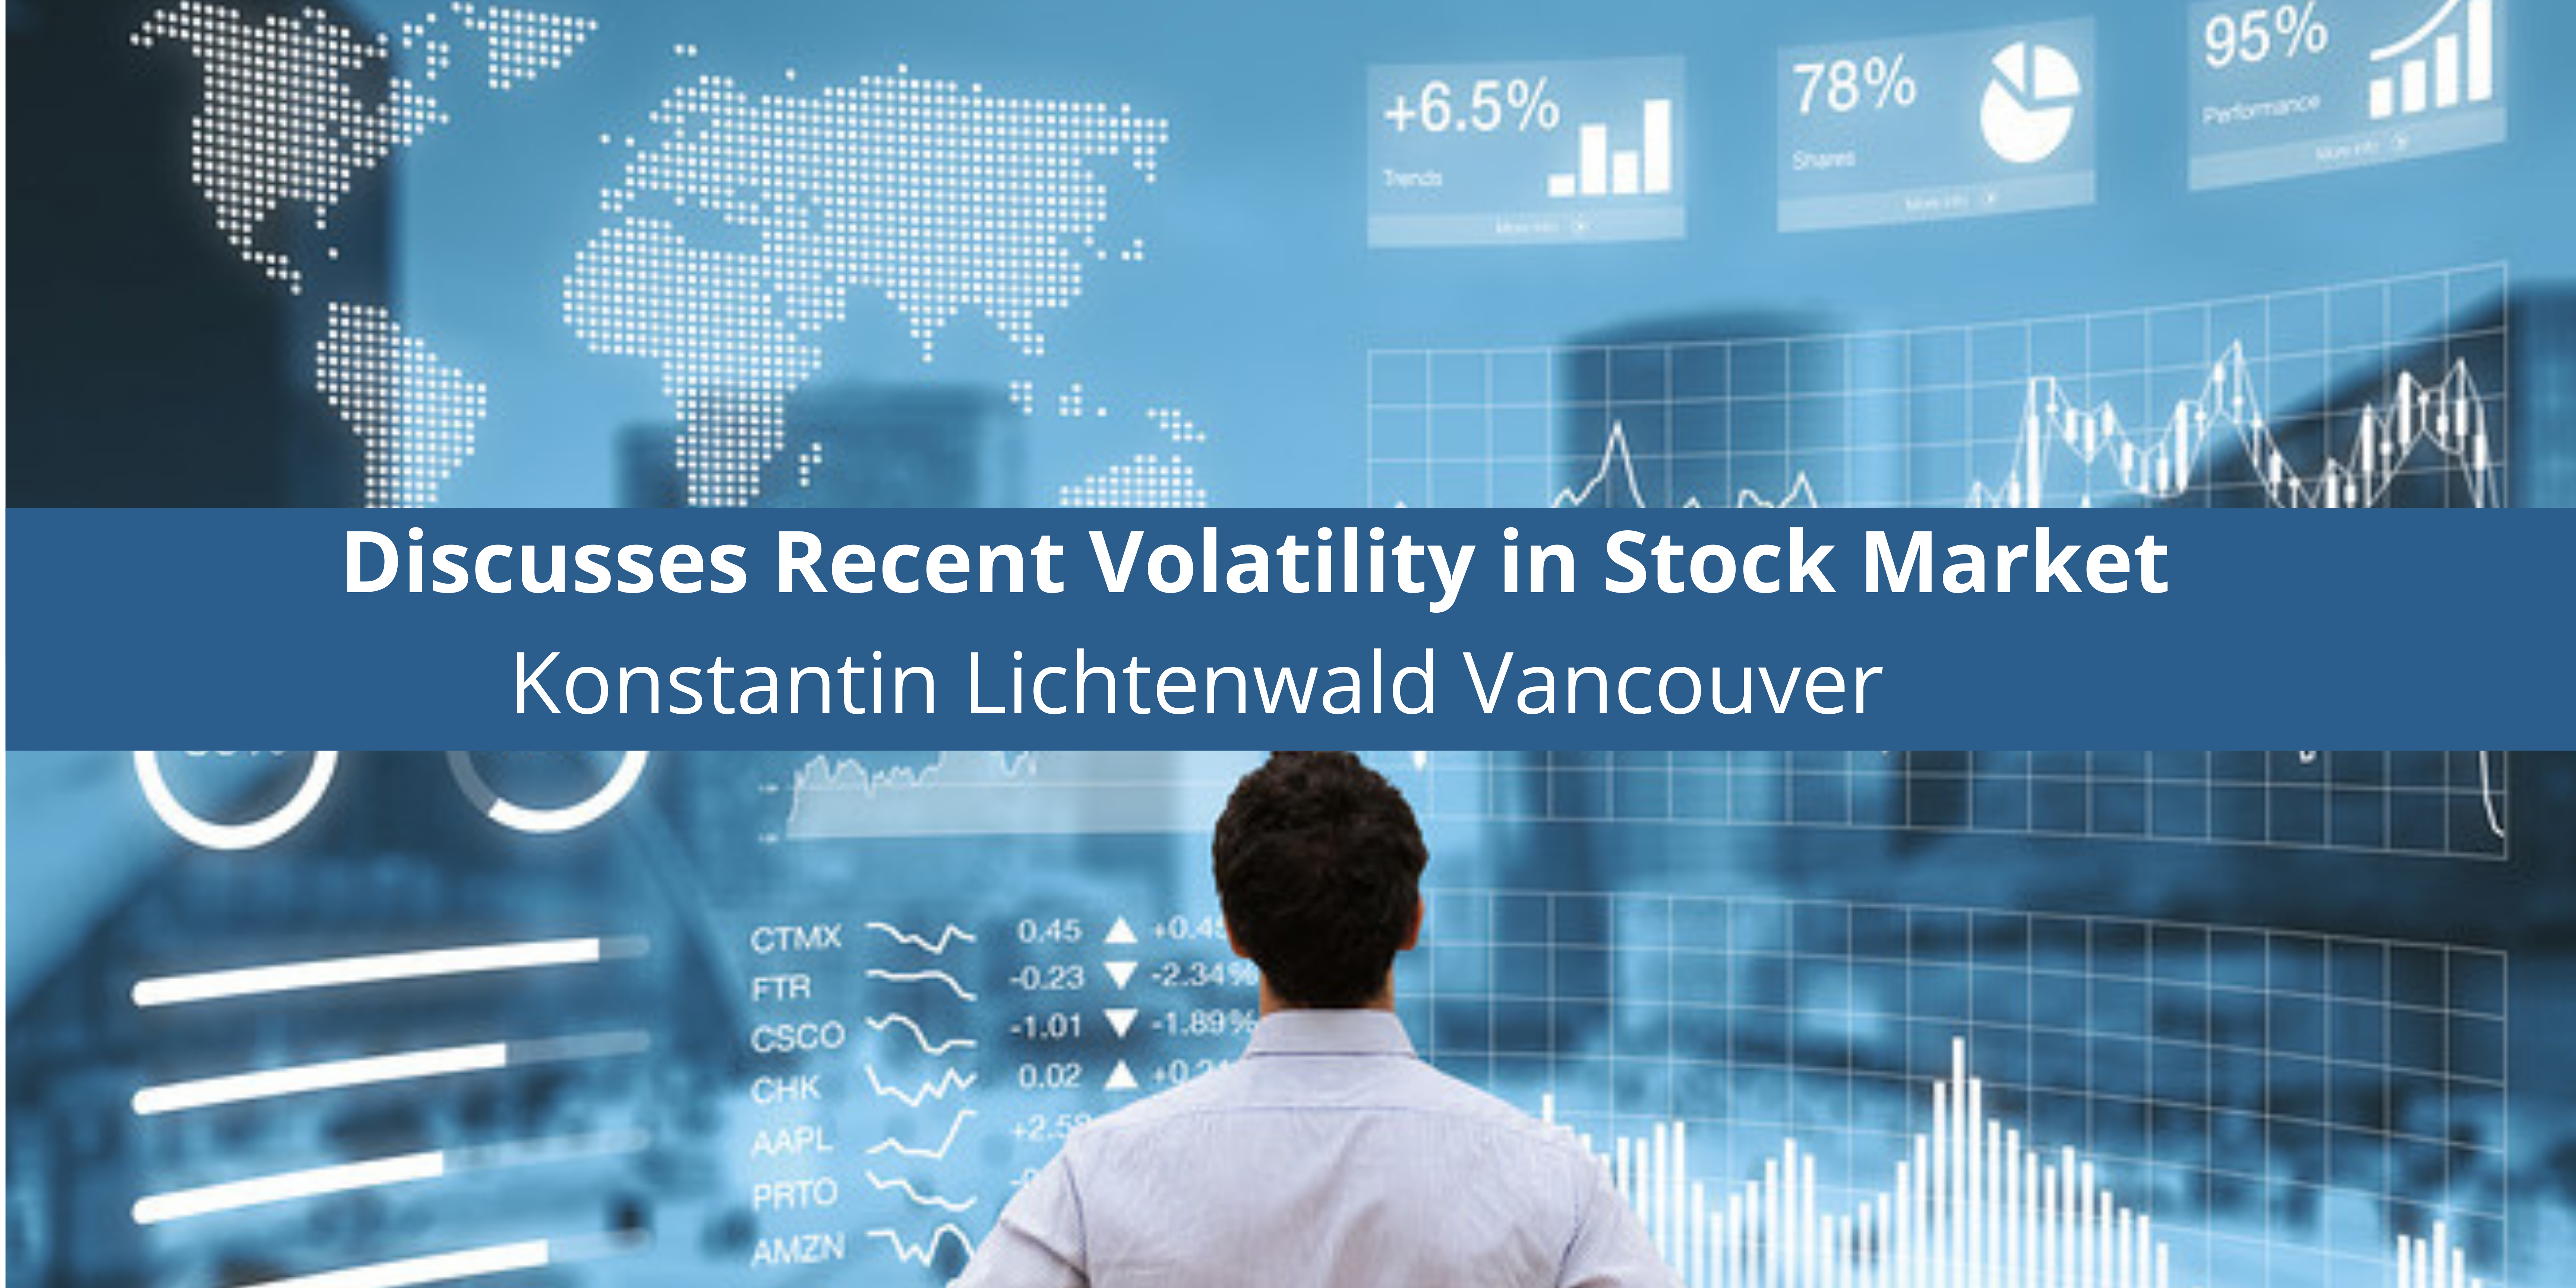 Discusses Recent Volatility in Stock Market